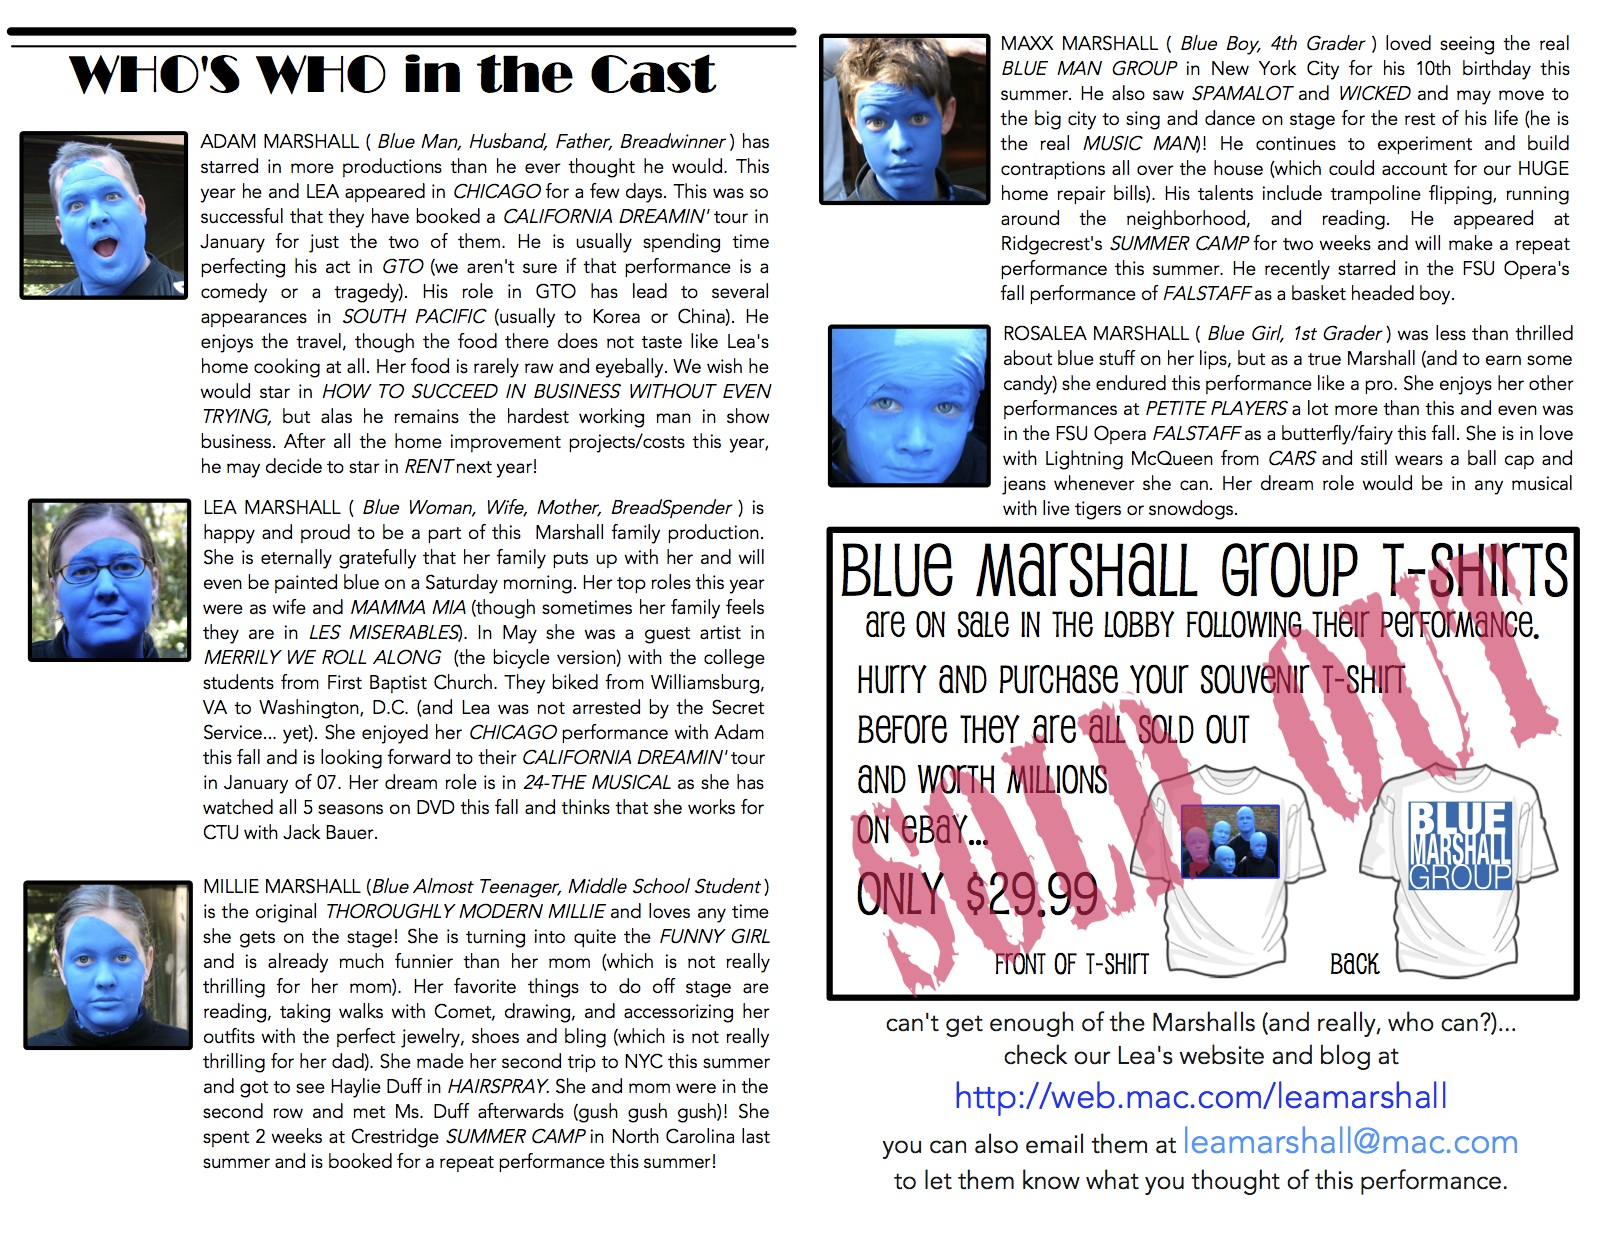 blue marshall pages 4 and 5.jpg